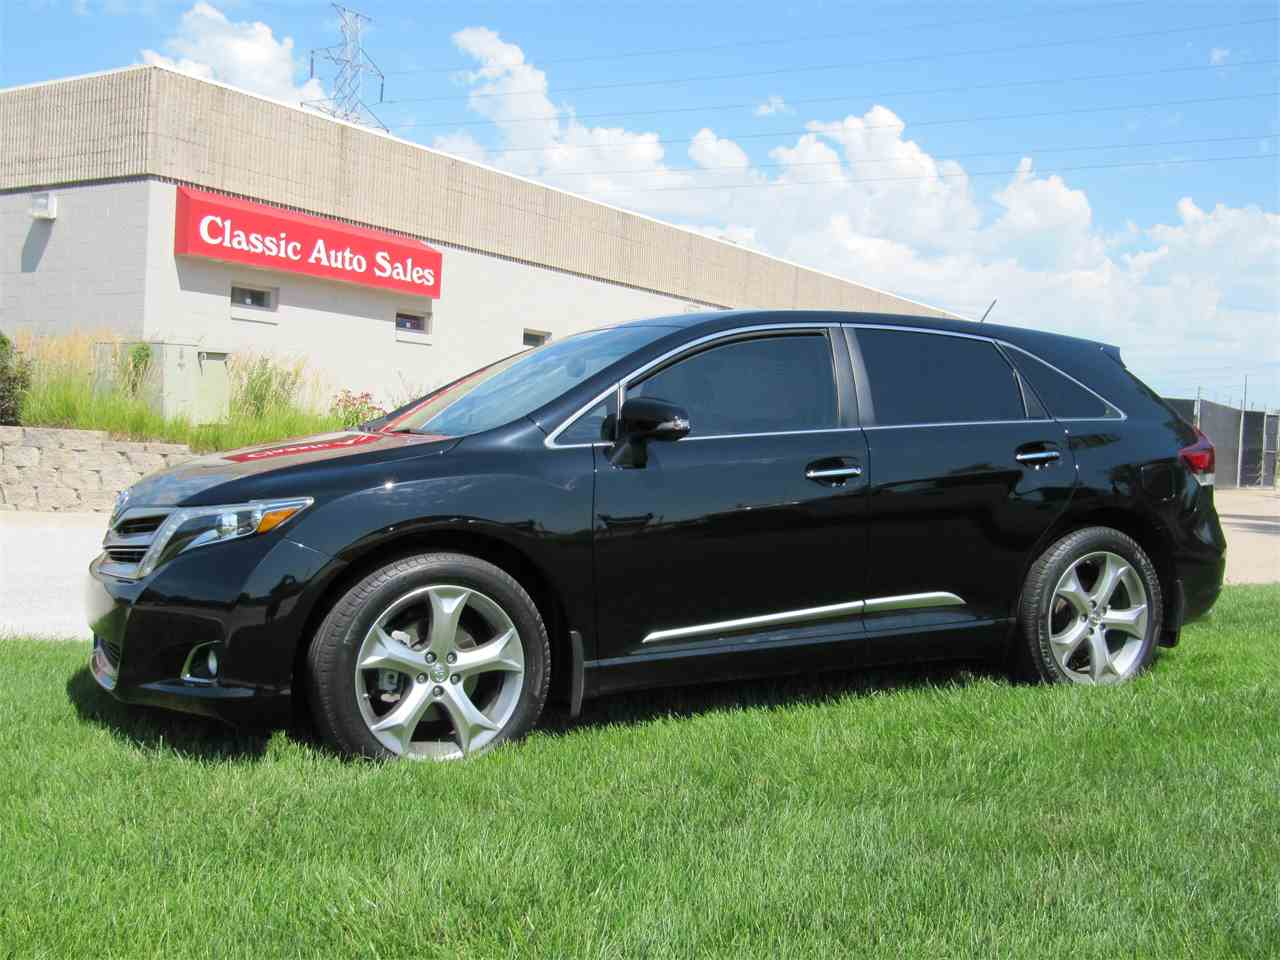 Large Picture of '13 Toyota Venza - $21,900.00 Offered by Classic Auto Sales - KYK2